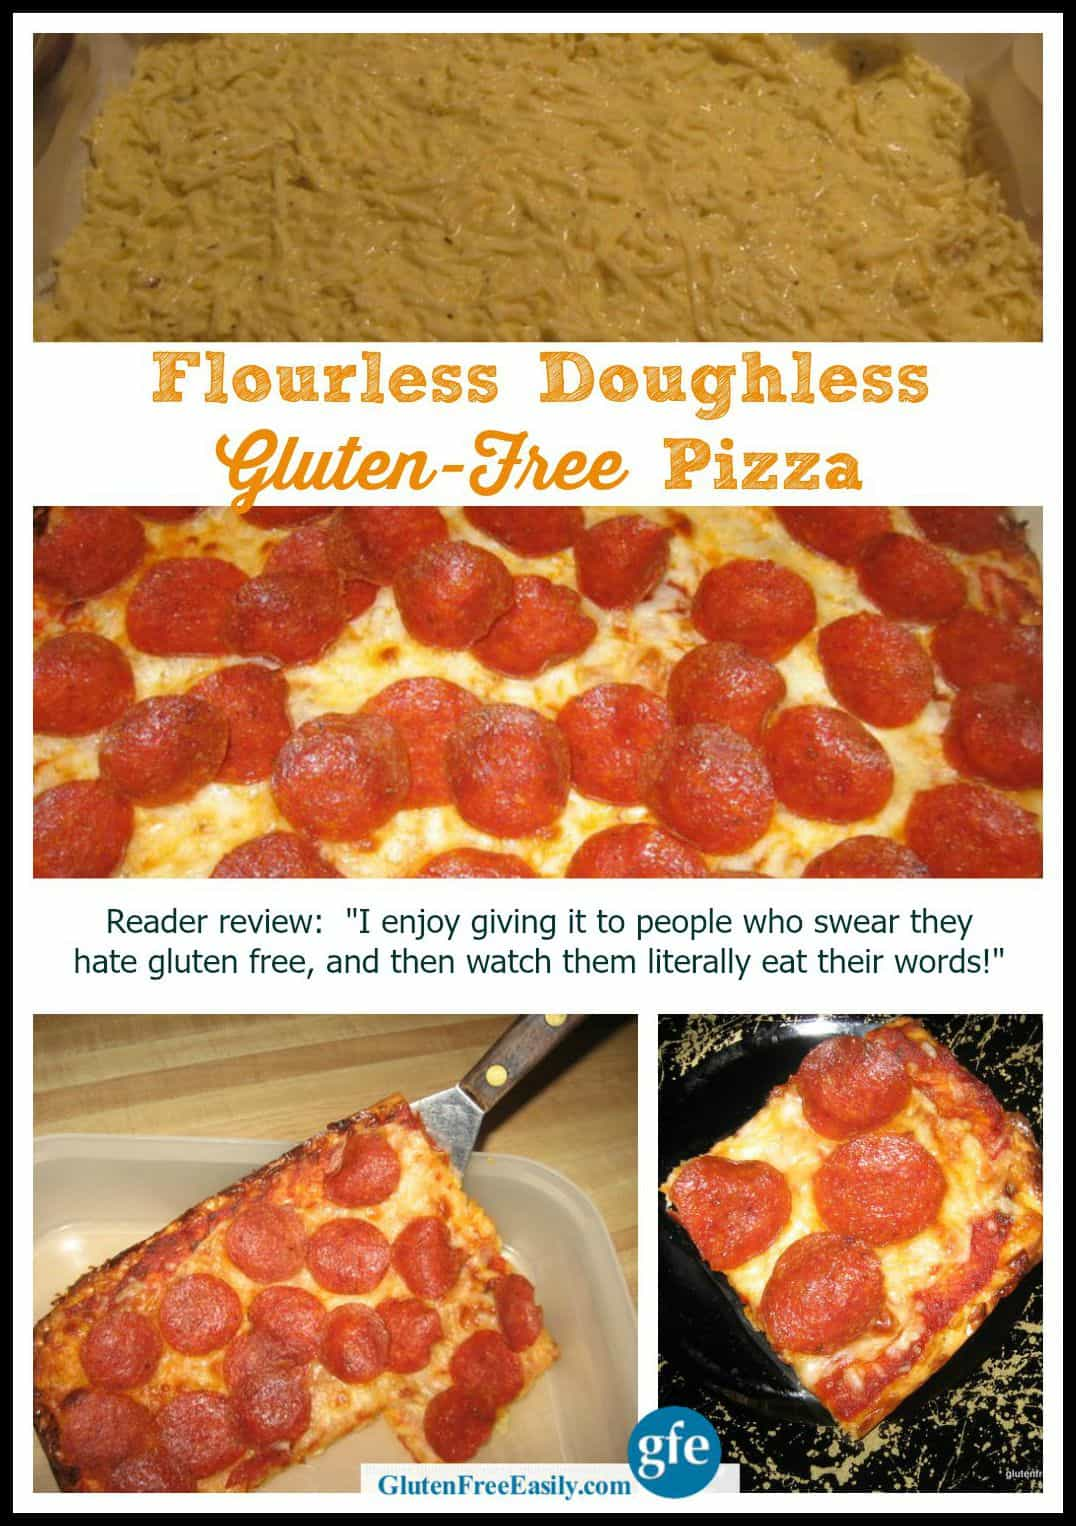 You Won't Believe This Gluten-Free Flourless and Doughless Gluten-Free PIzza!